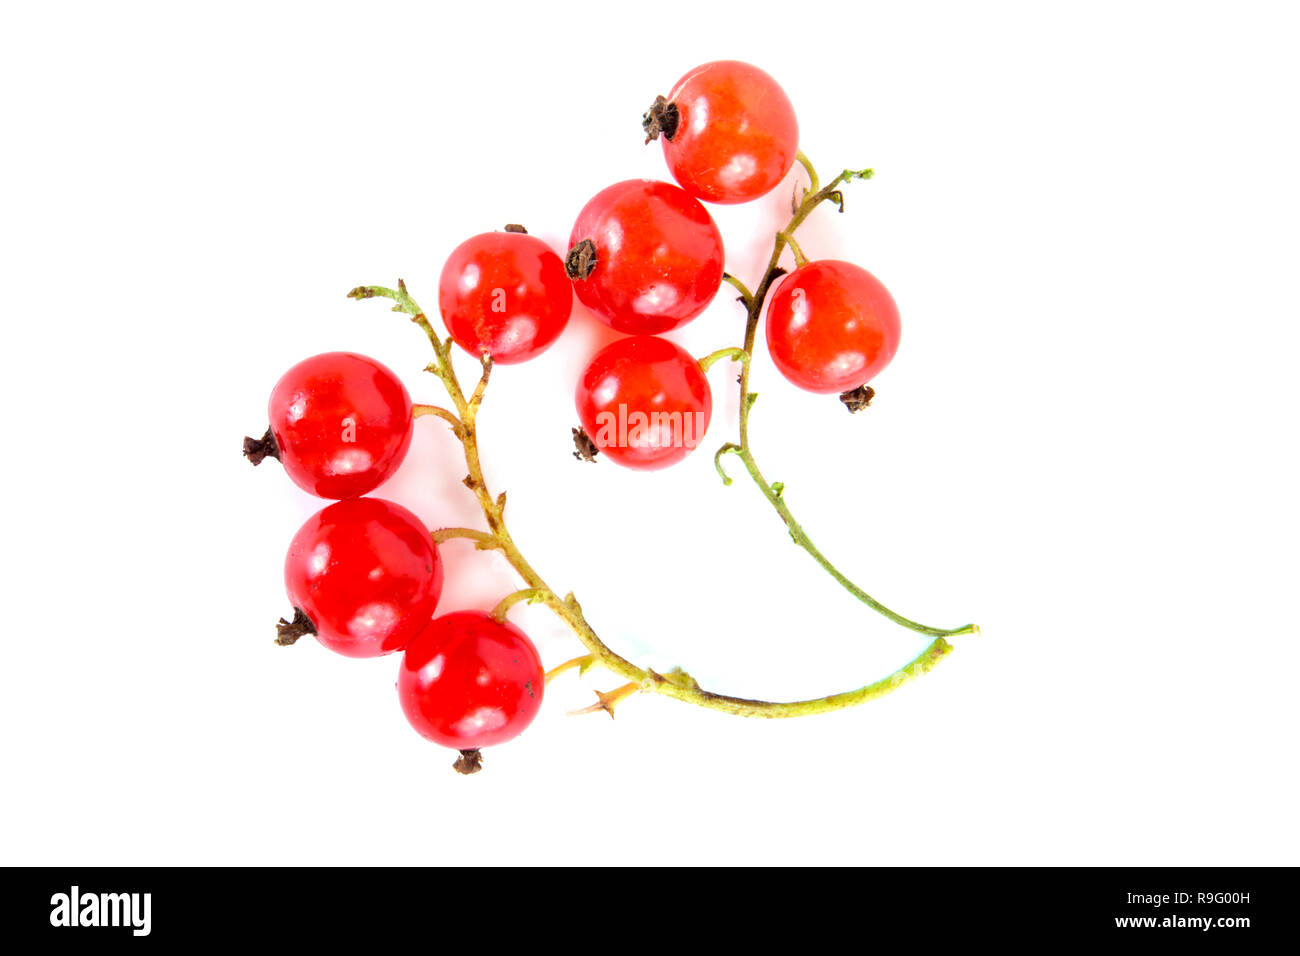 Ripe berries of red currant are isolated on a white background - Stock Image